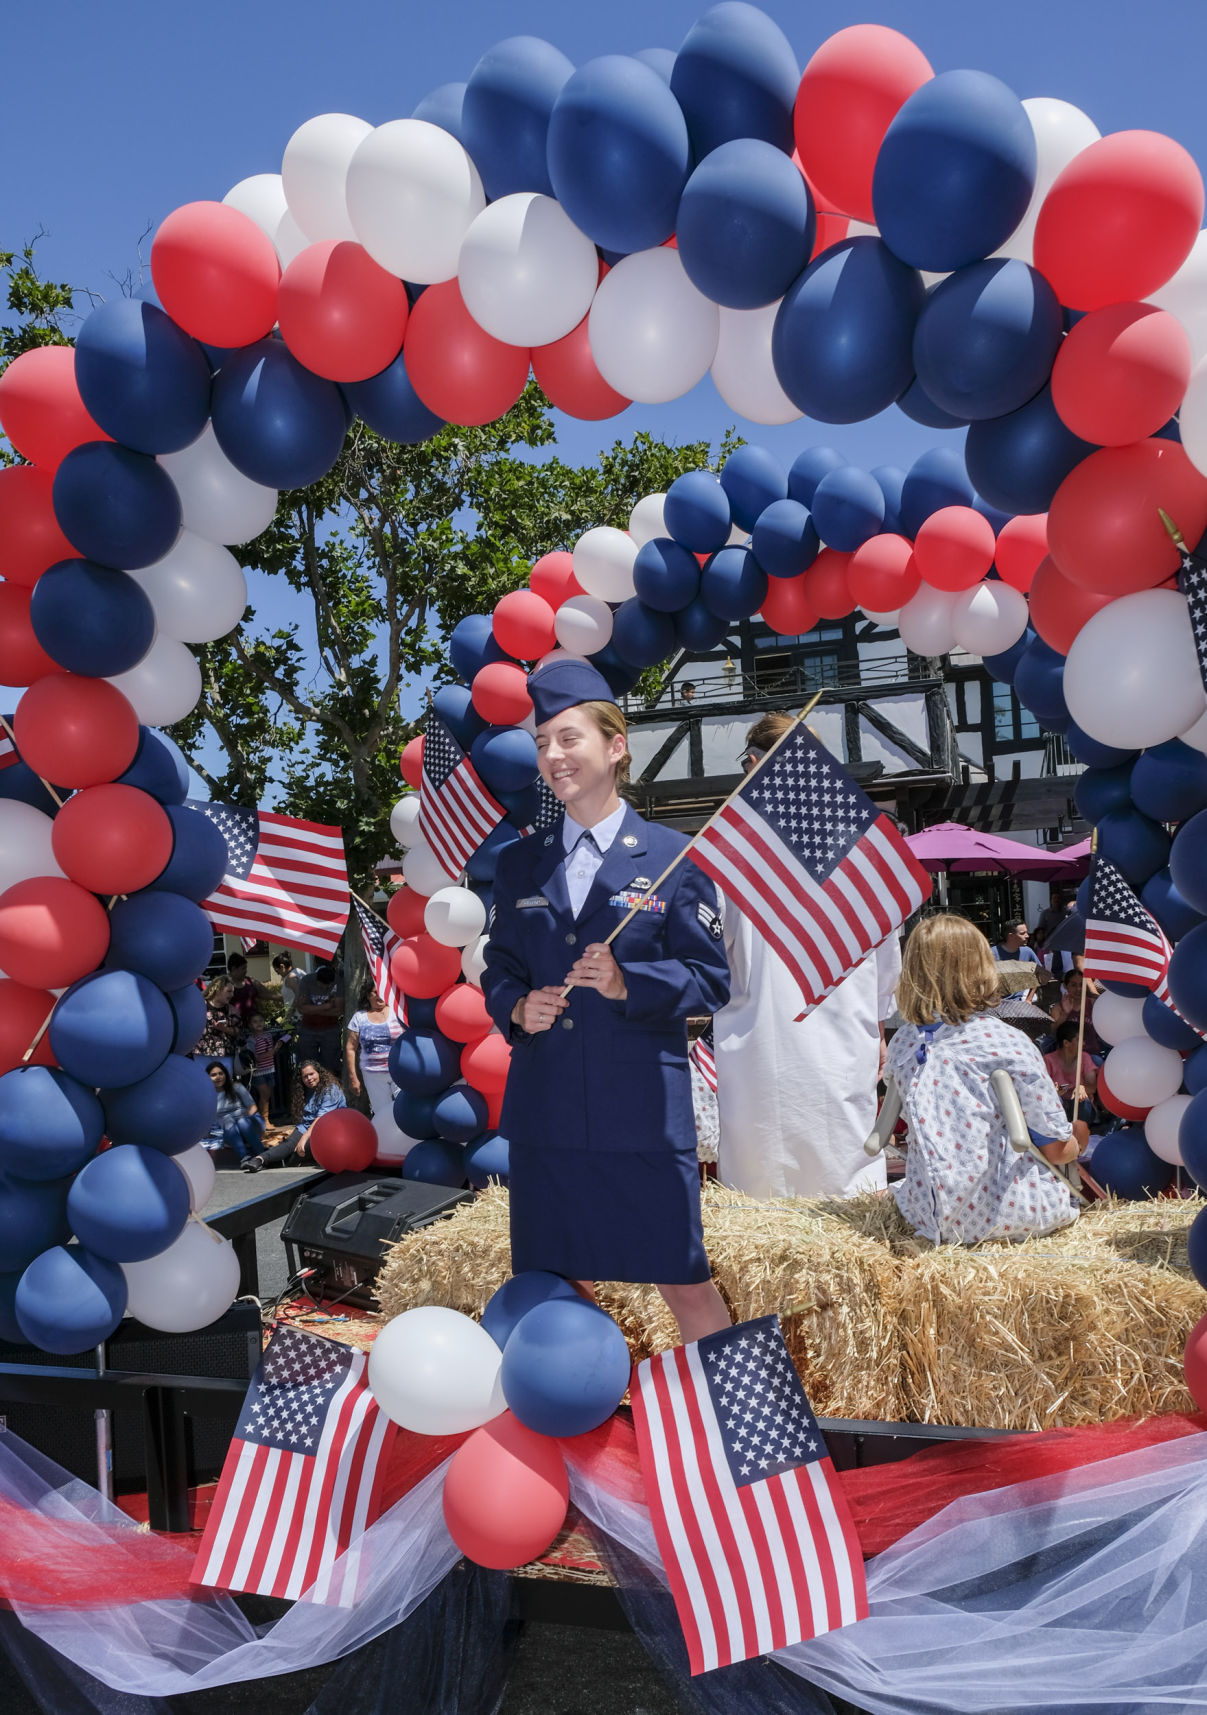 GALLERY Solvang honors veterans at 4th of